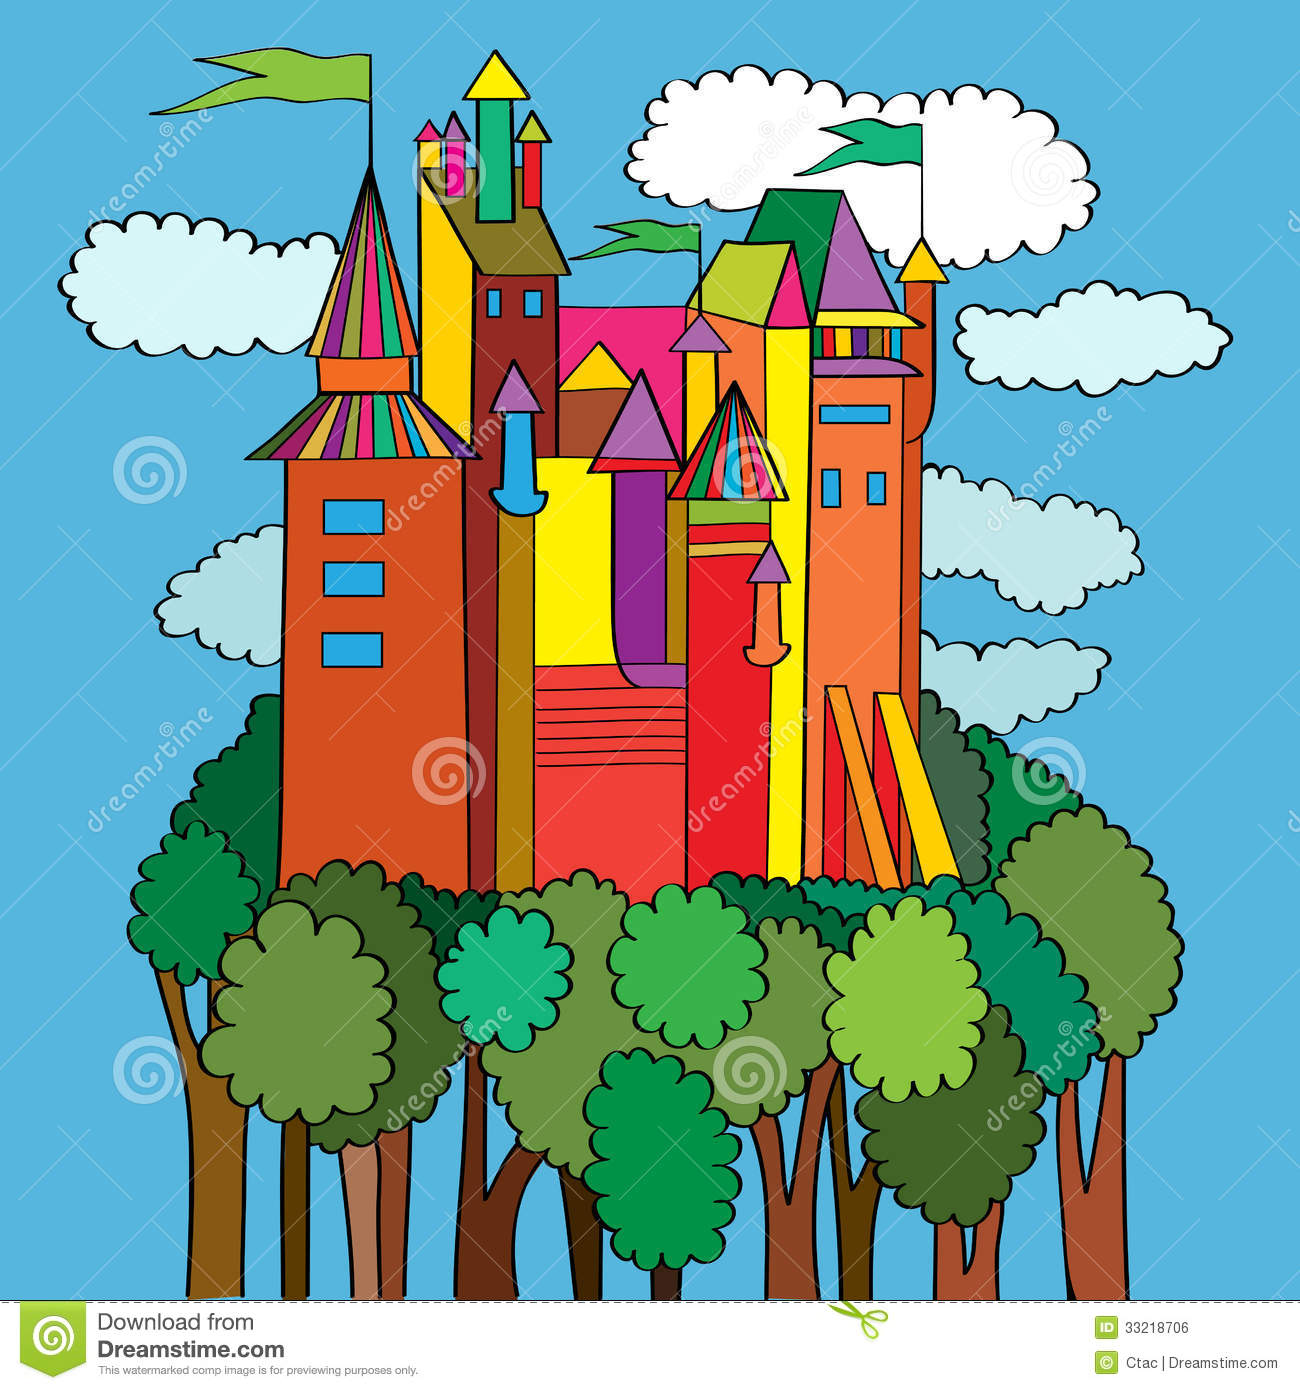 Middle Age Castle Royalty Free Stock Image - Image: 33218706